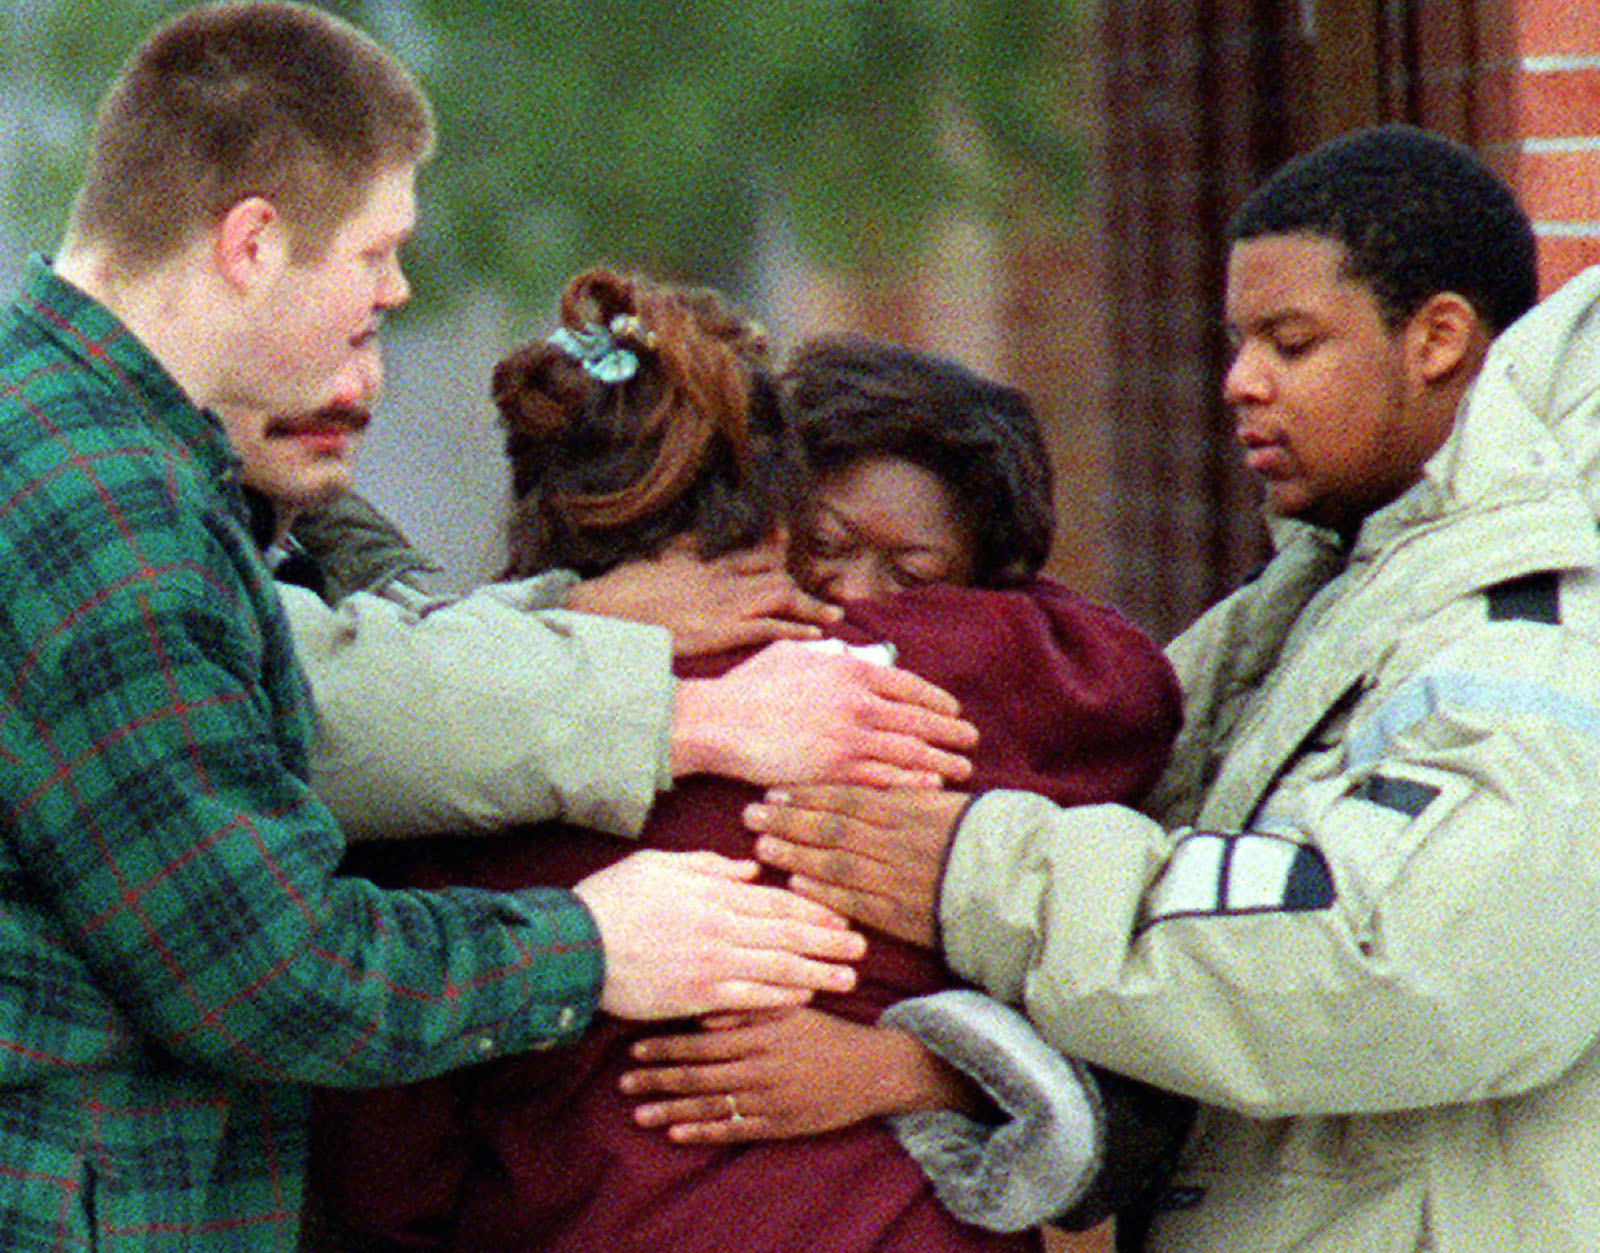 Some of the members of the Job Corps center near Harpers Ferry, W. Va. console one another Saturday, Feb. 17, 1996. All 17 passengers aboard a MARC commuter train were Job Corps members traveling for a long weekend when it collided with an Amtrak passenger train in Silver Spring, Md. Friday evening, Feb. 16, 1996. (AP Photo/J. Scott Applewhite)